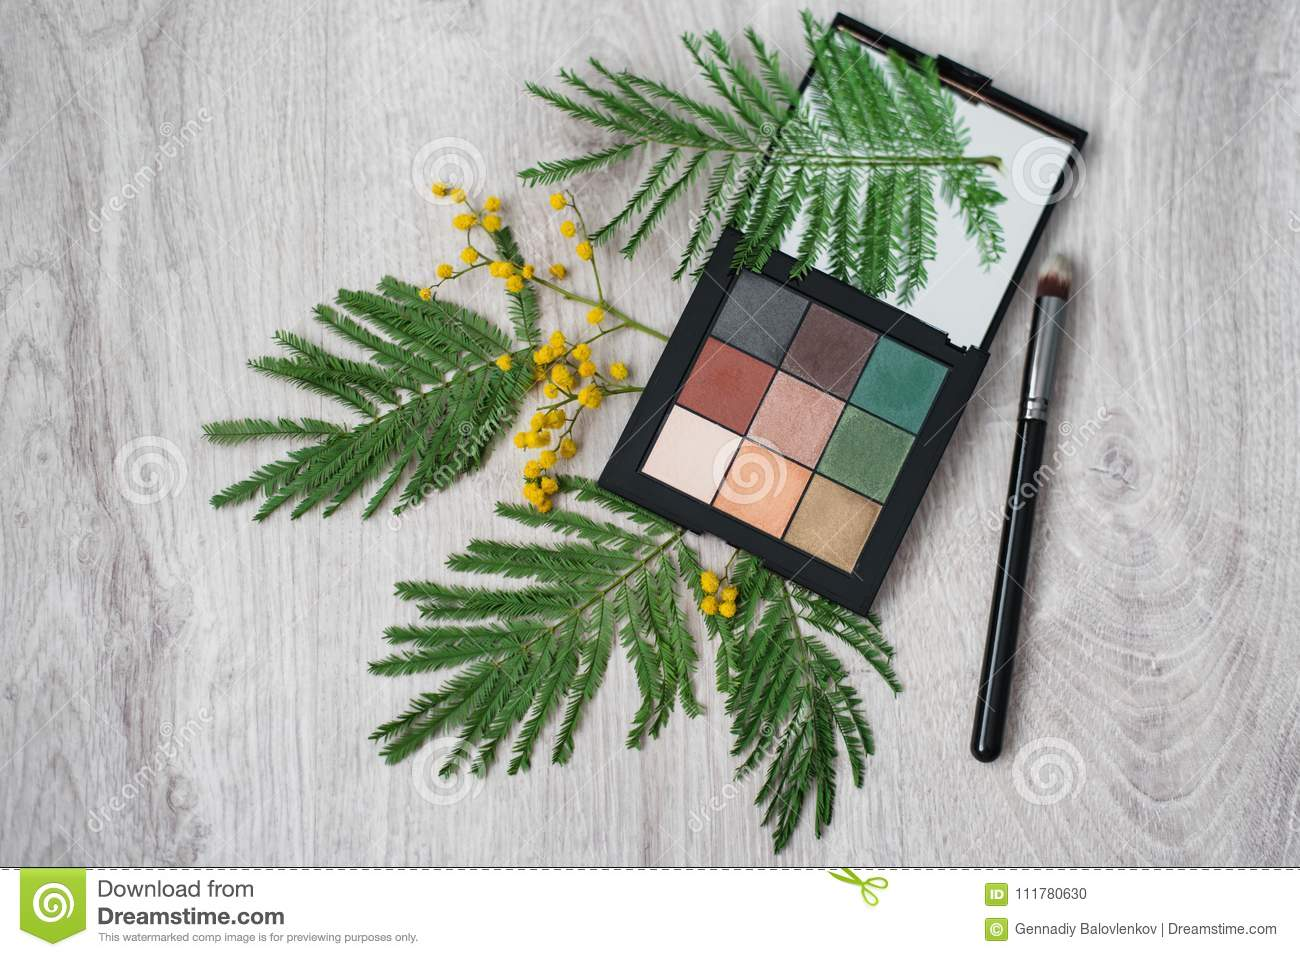 Still life of summer cosmetic make-up, brush and flowers of mimosa on a wooden table. Decor and makeup